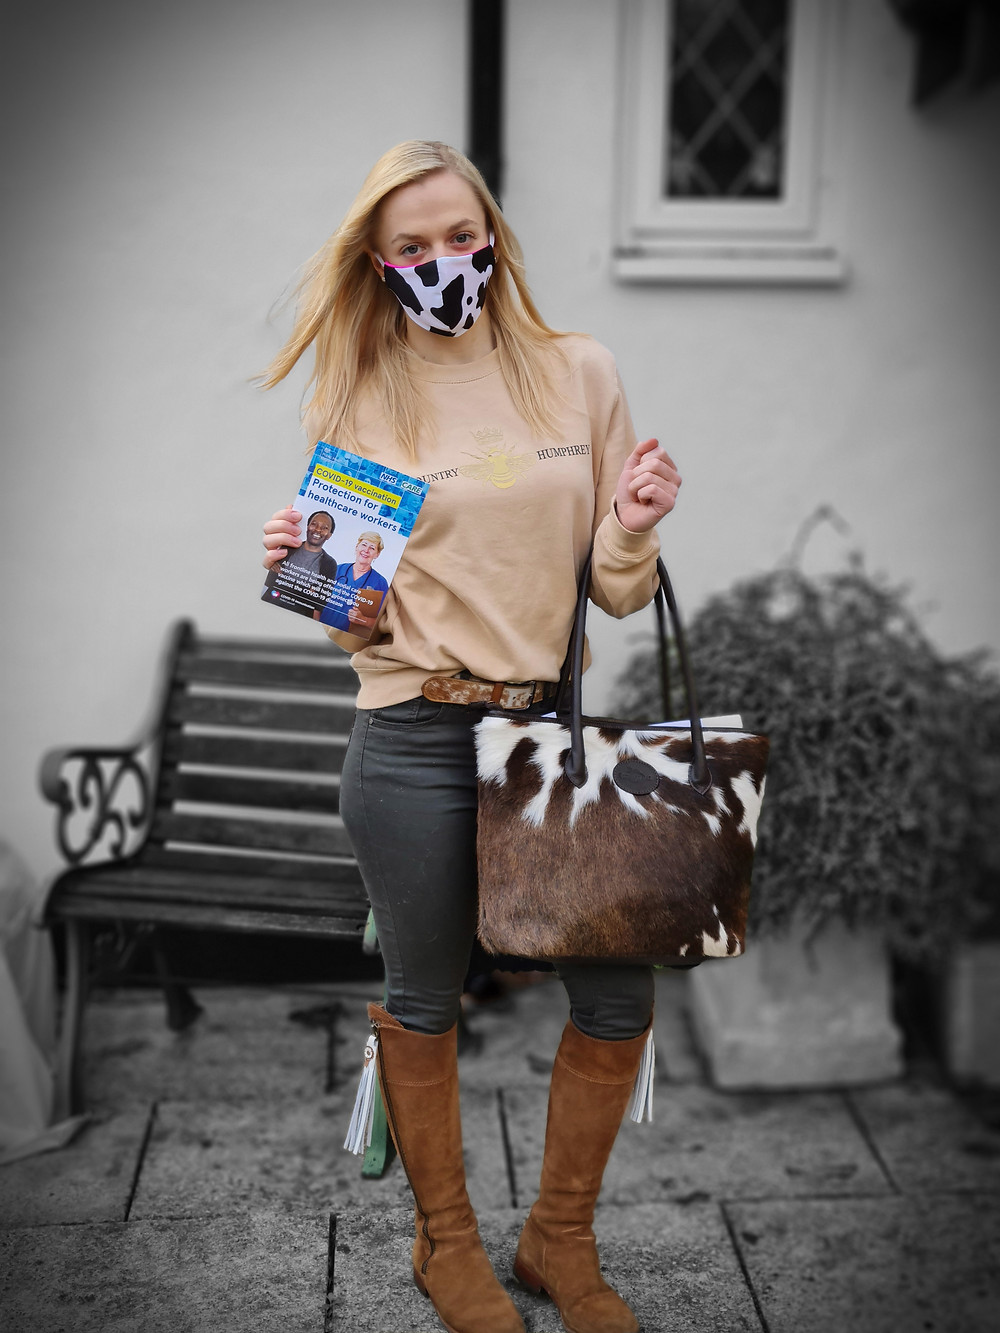 Bethany getting her COVID 19 vaccine wearing the Upton Cowhide Leather Handbag & Fairfax and Favor Boots